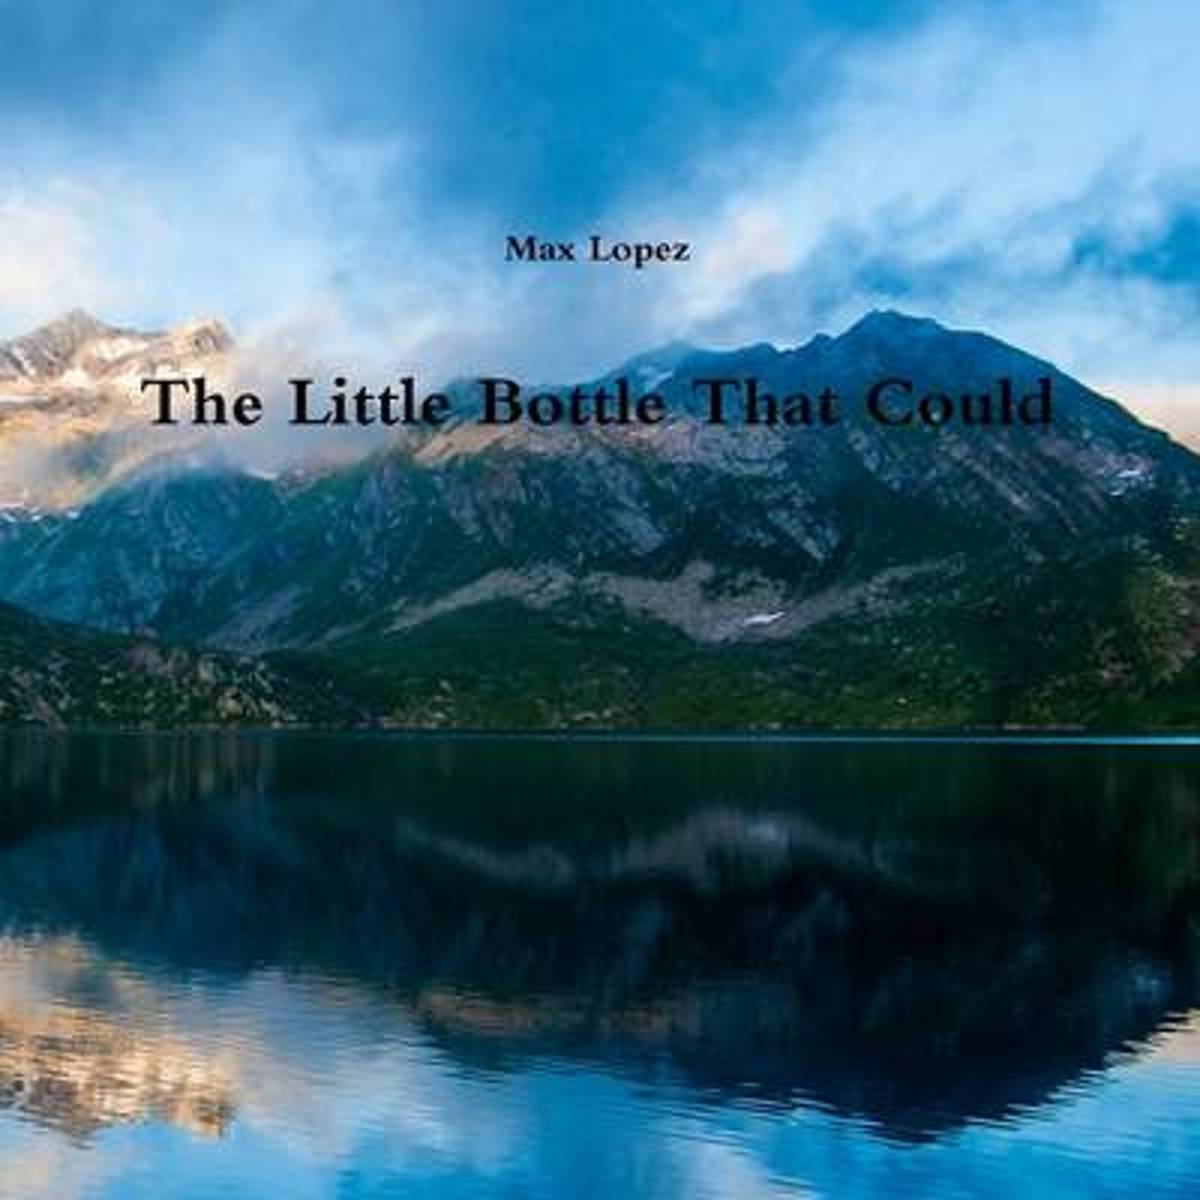 The Little Bottle That Could